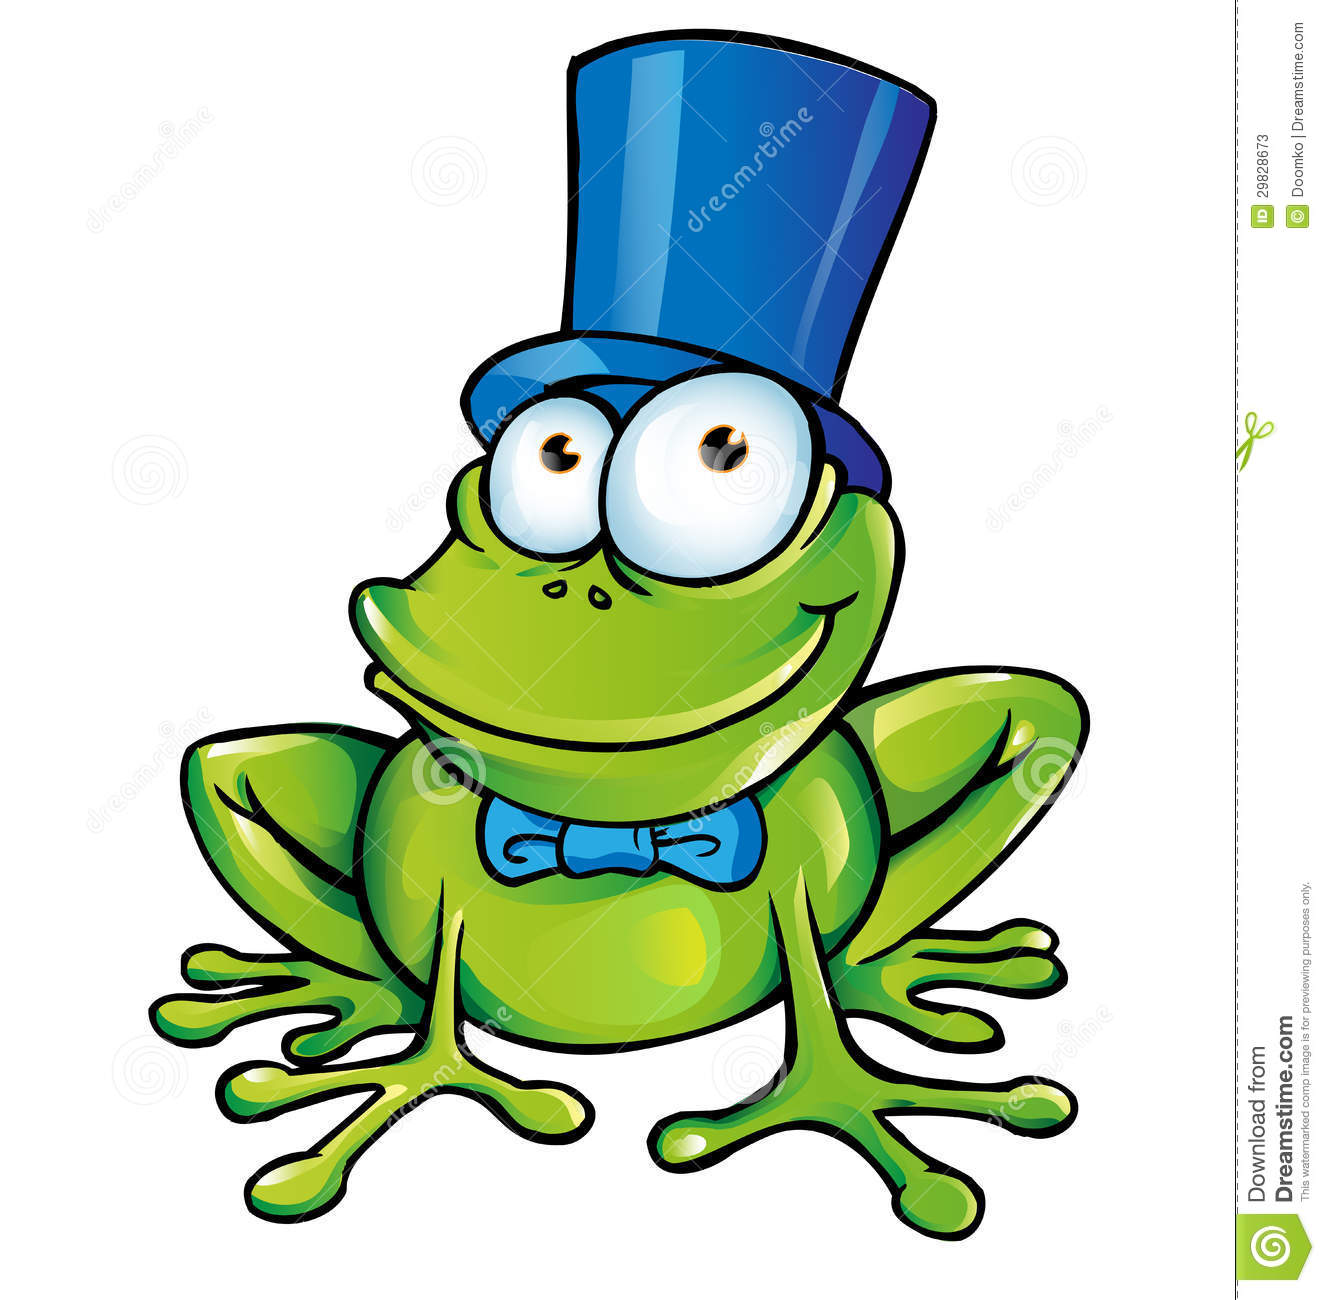 Funny Frog Party Stock Photos - Image: 29828673